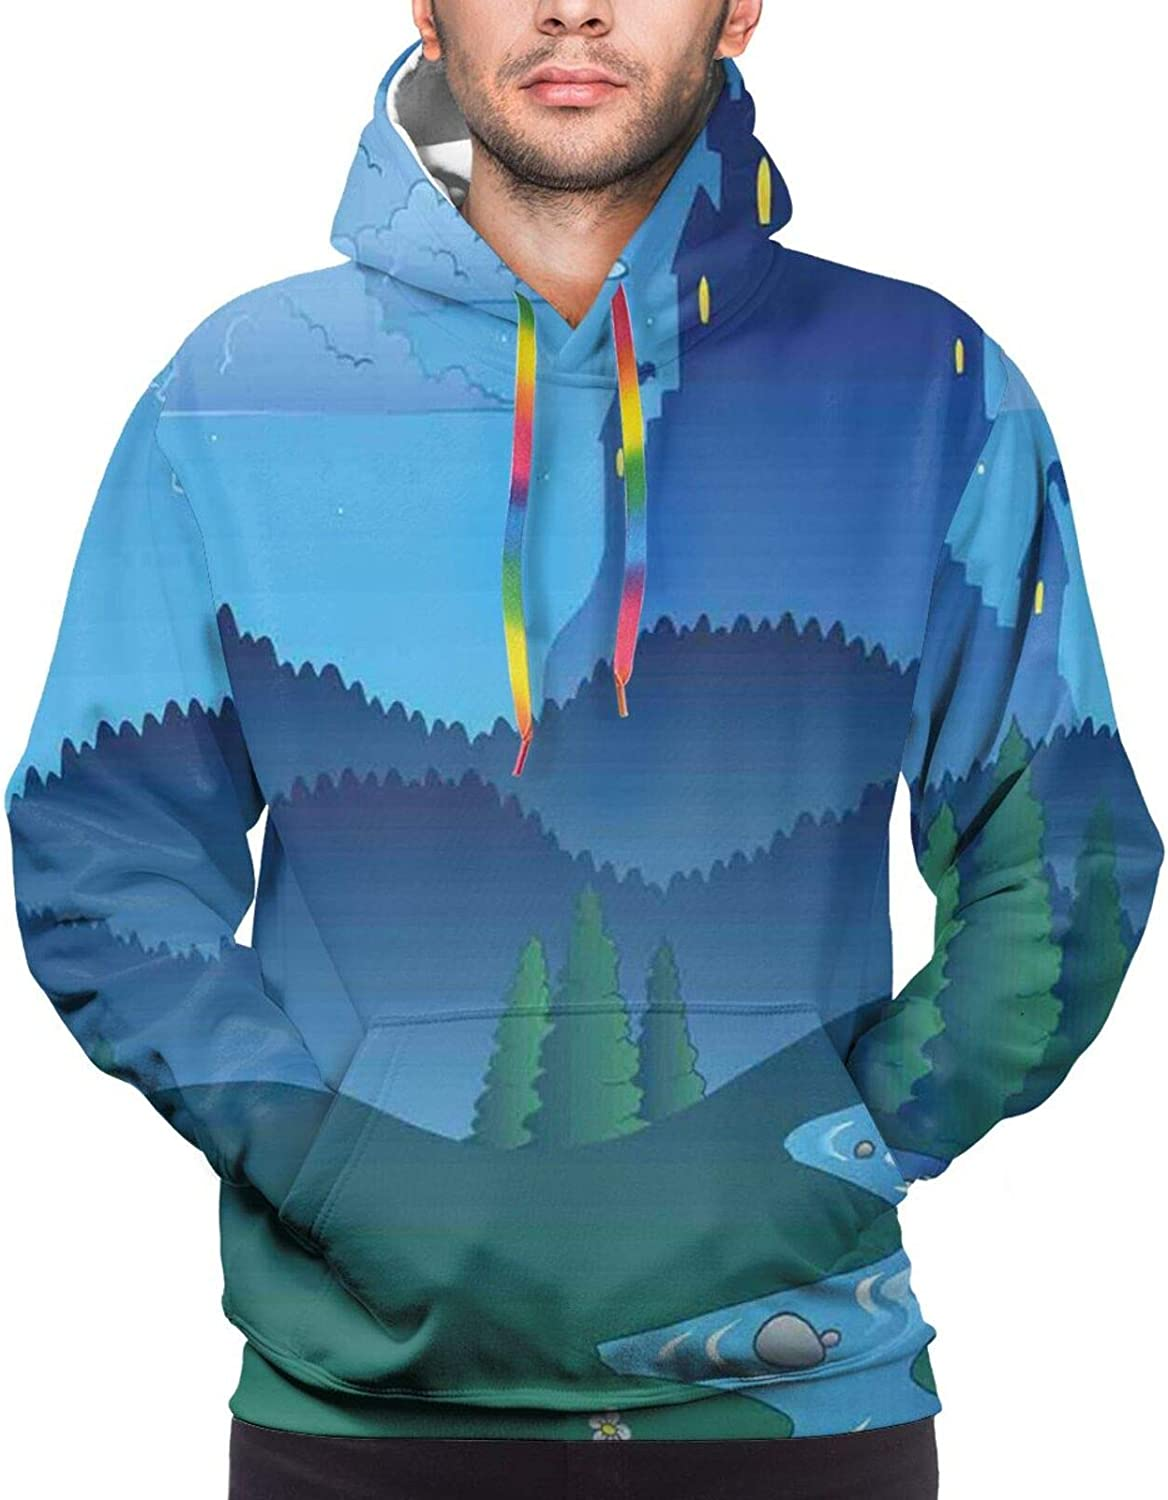 Men's Hoodies Sweatshirts,Lonely Castle On The Hill Beyond The Mountains and Full Moon